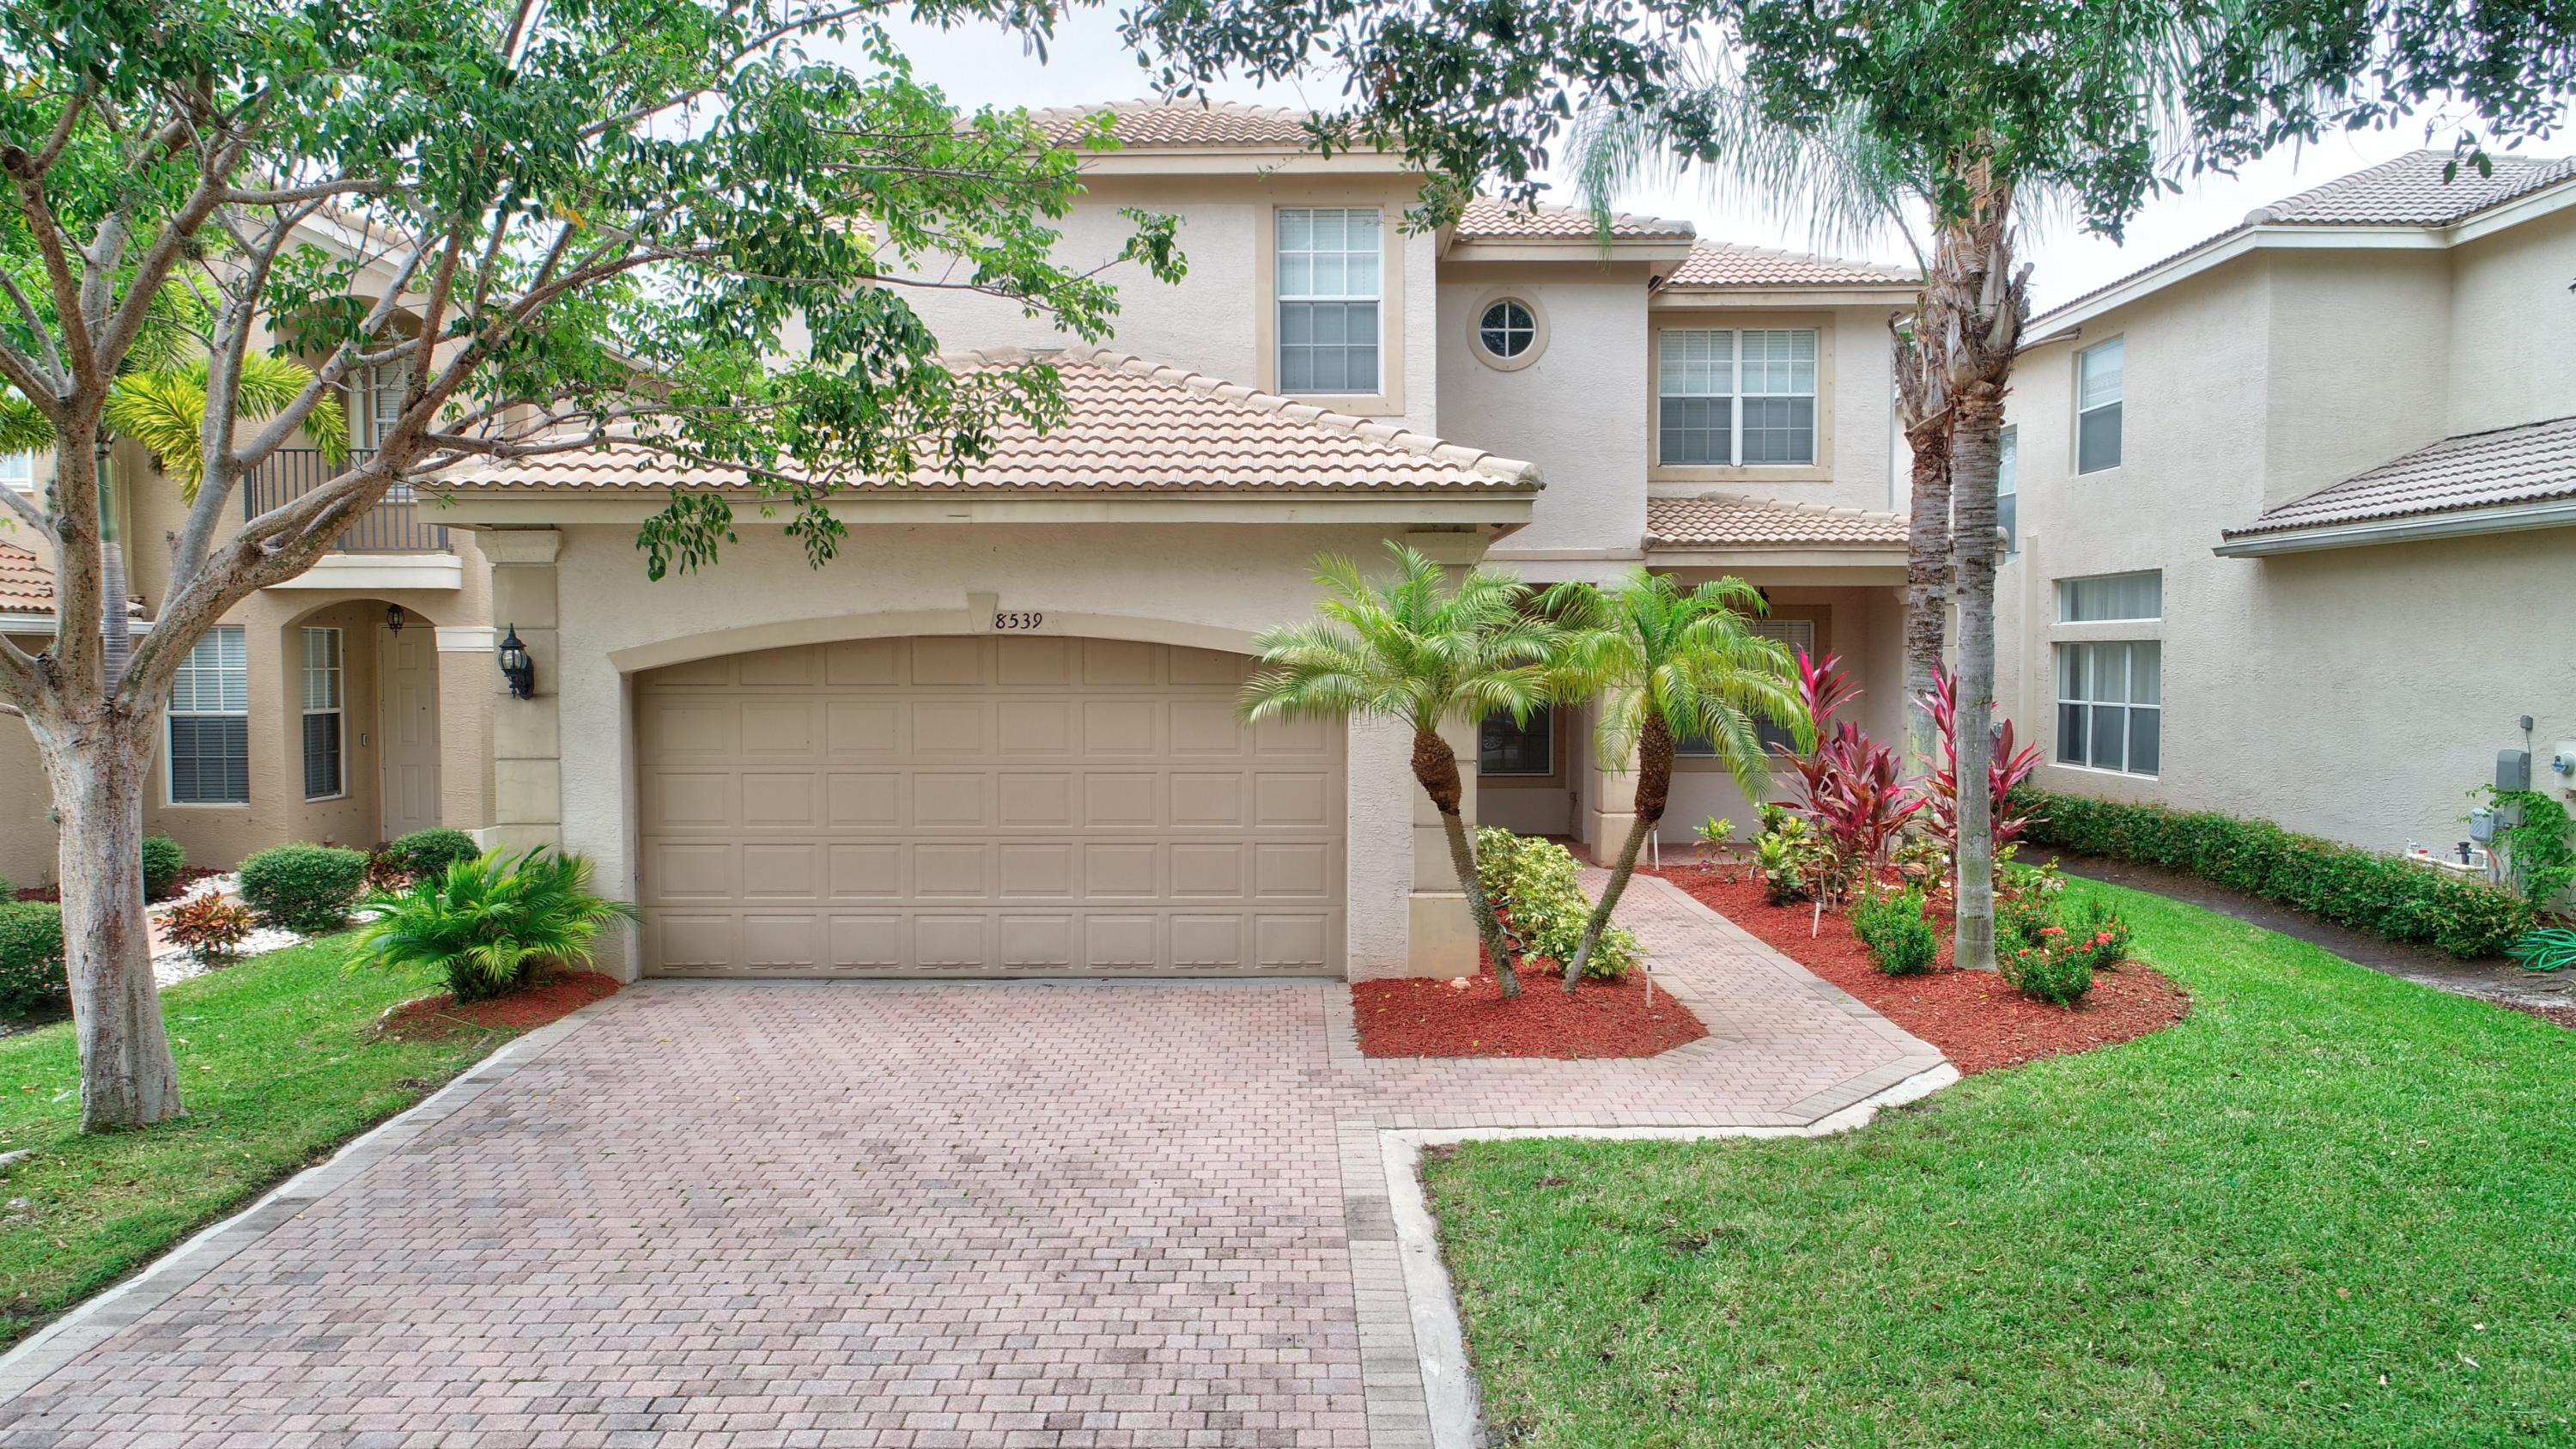 8539 Woodgrove Harbor Lane Boynton Beach, FL 33473